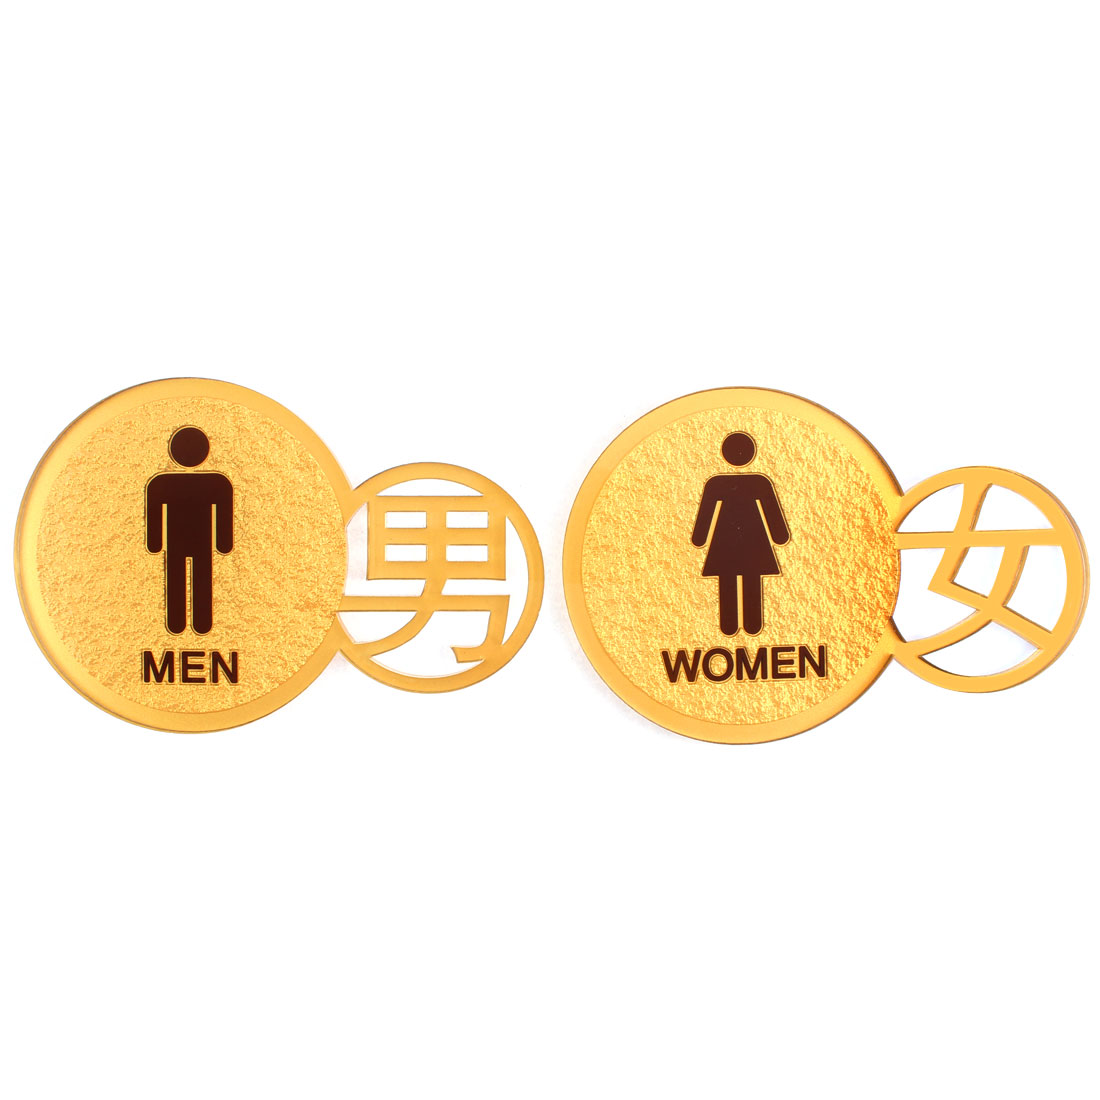 Restroom Men Women Signs Acrylic Board 13 x 19cm Pair